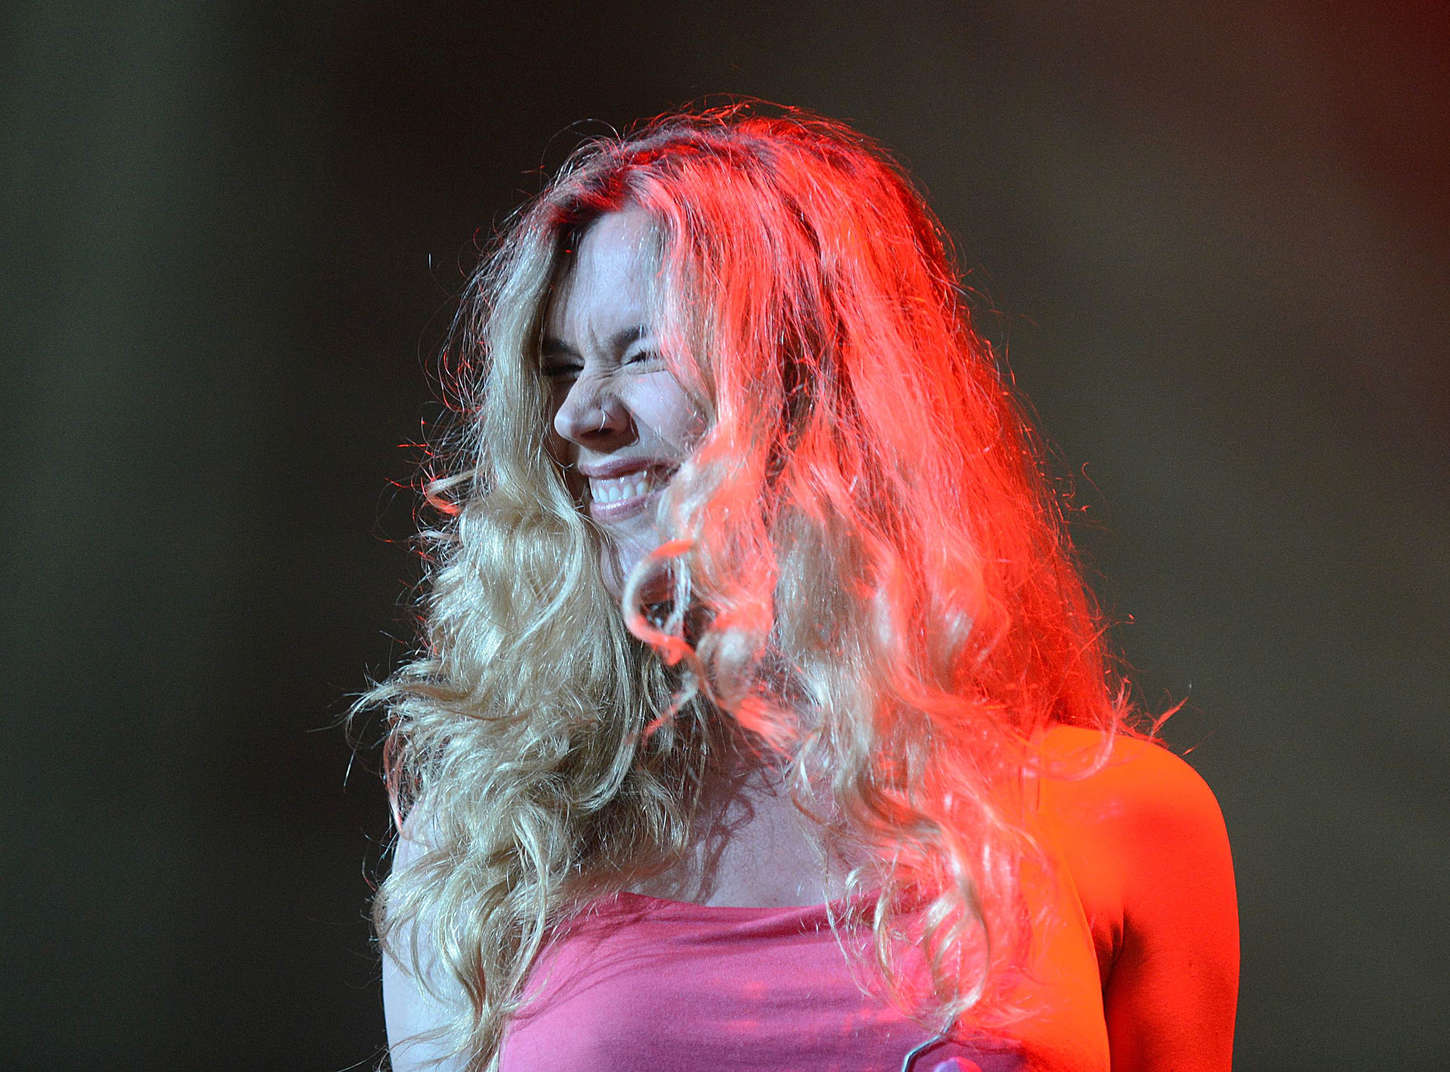 Joss Stone Performing at a Concert at Carnival City in Johannesburg